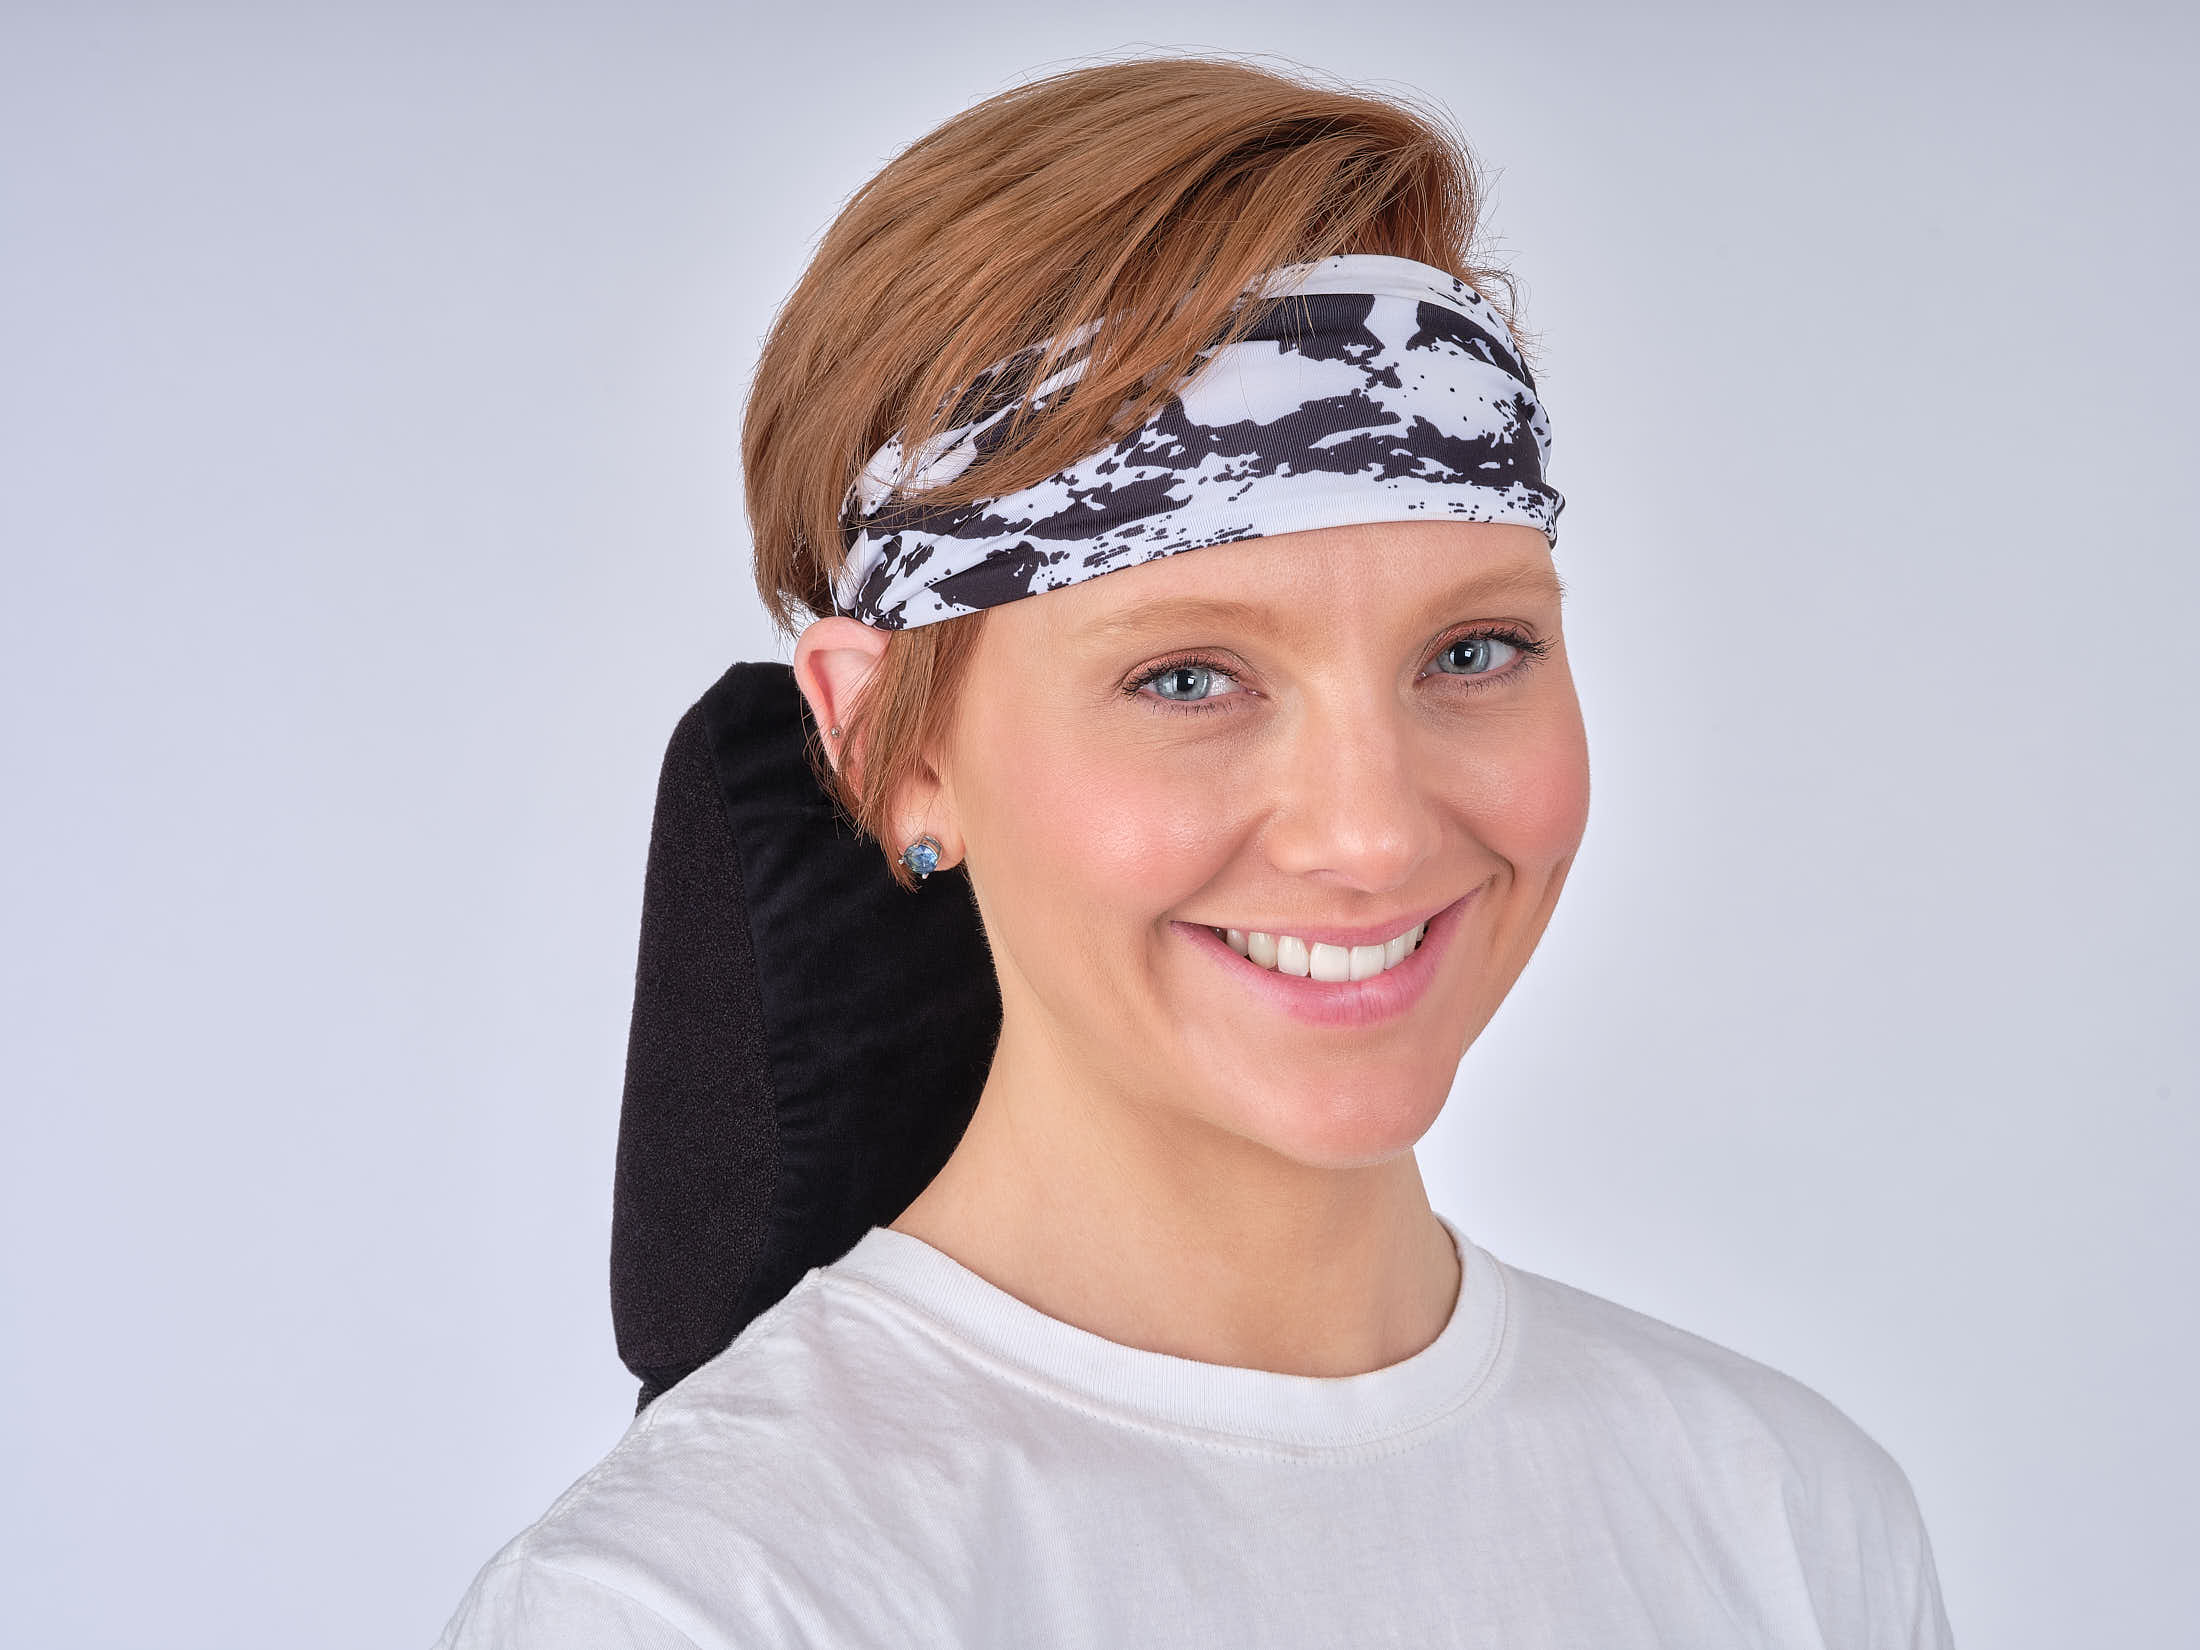 Model with headband 5-Advertising Product Photography